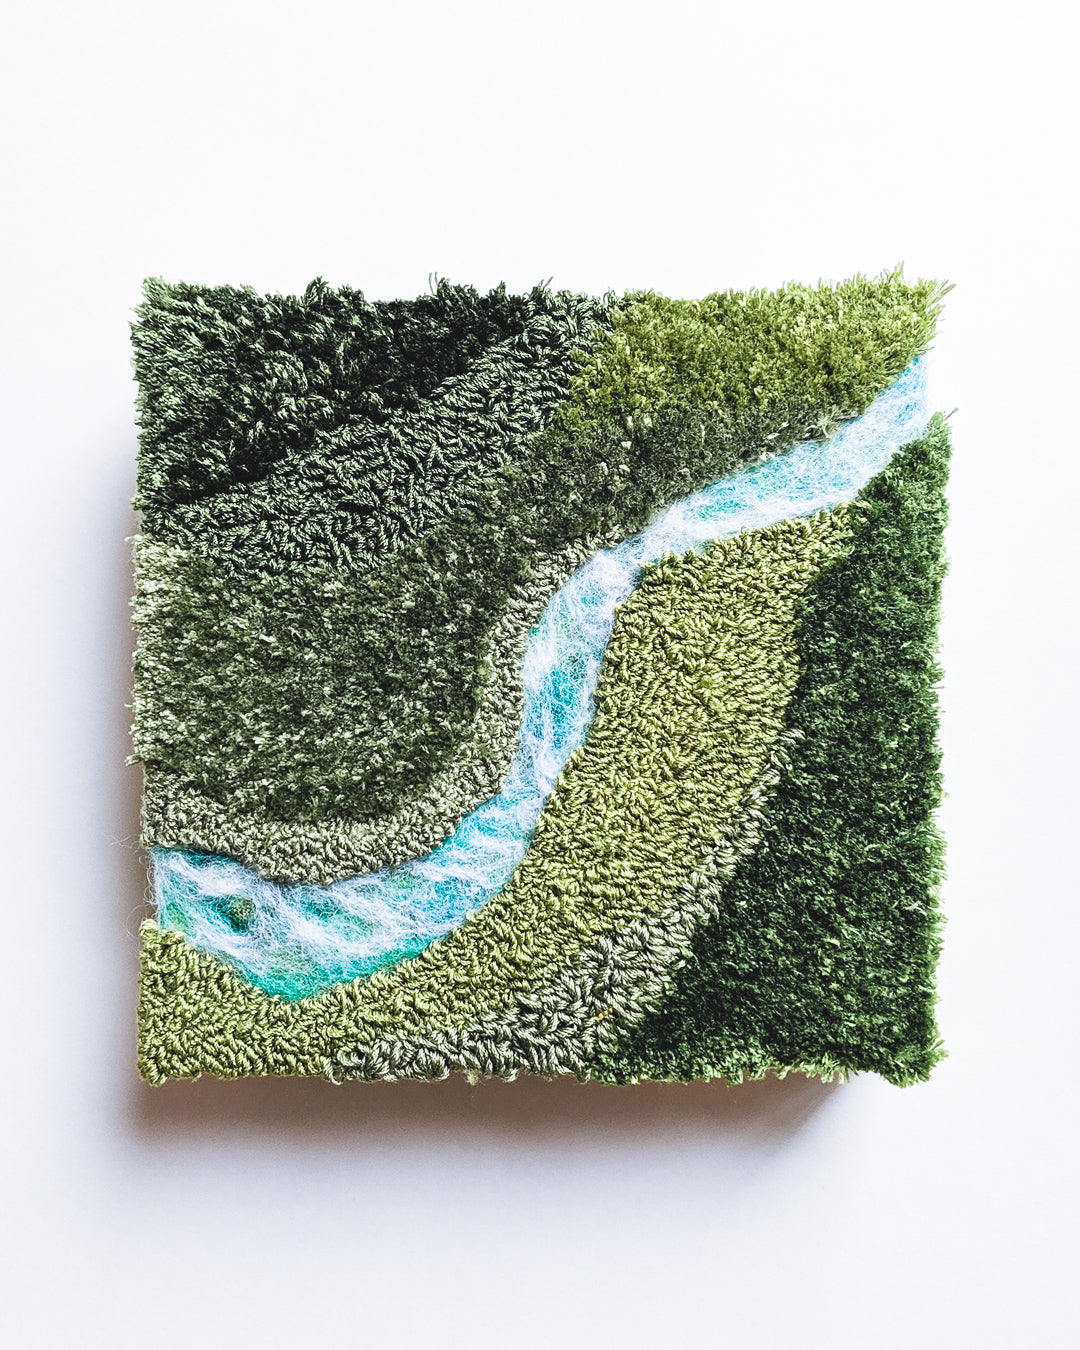 River no. 3 Original Fiber Painting